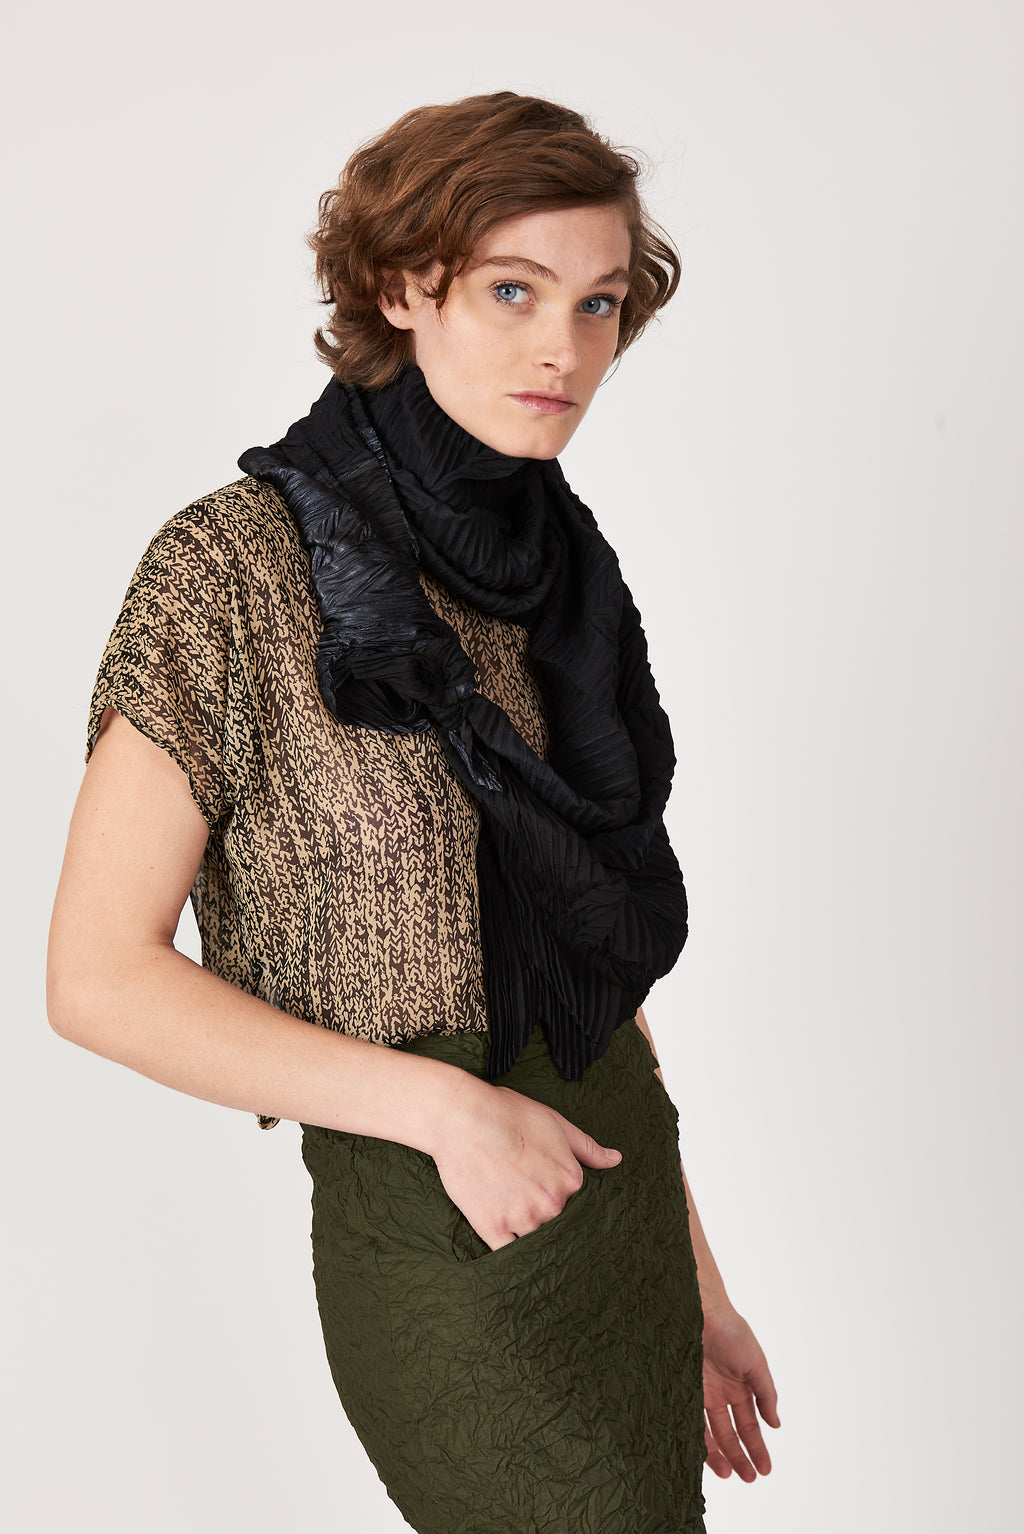 Chaos Pleated Arc Scarf in Mixed Solids